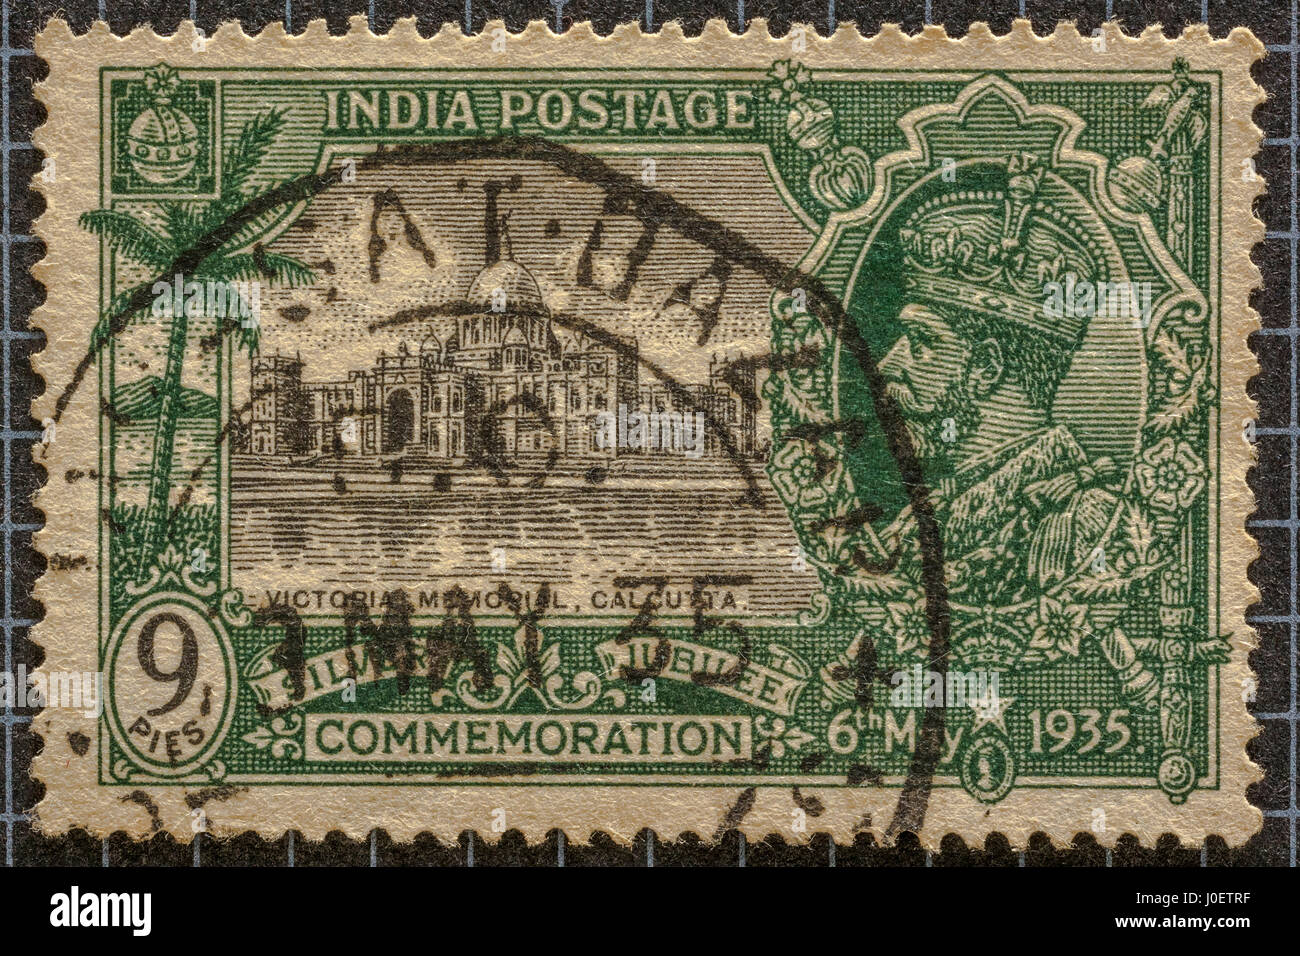 silver jubilee commemoration 1935 postage stamp 9 pies, Victoria memorial, calcutta, postage stamps, india, asia - Stock Image